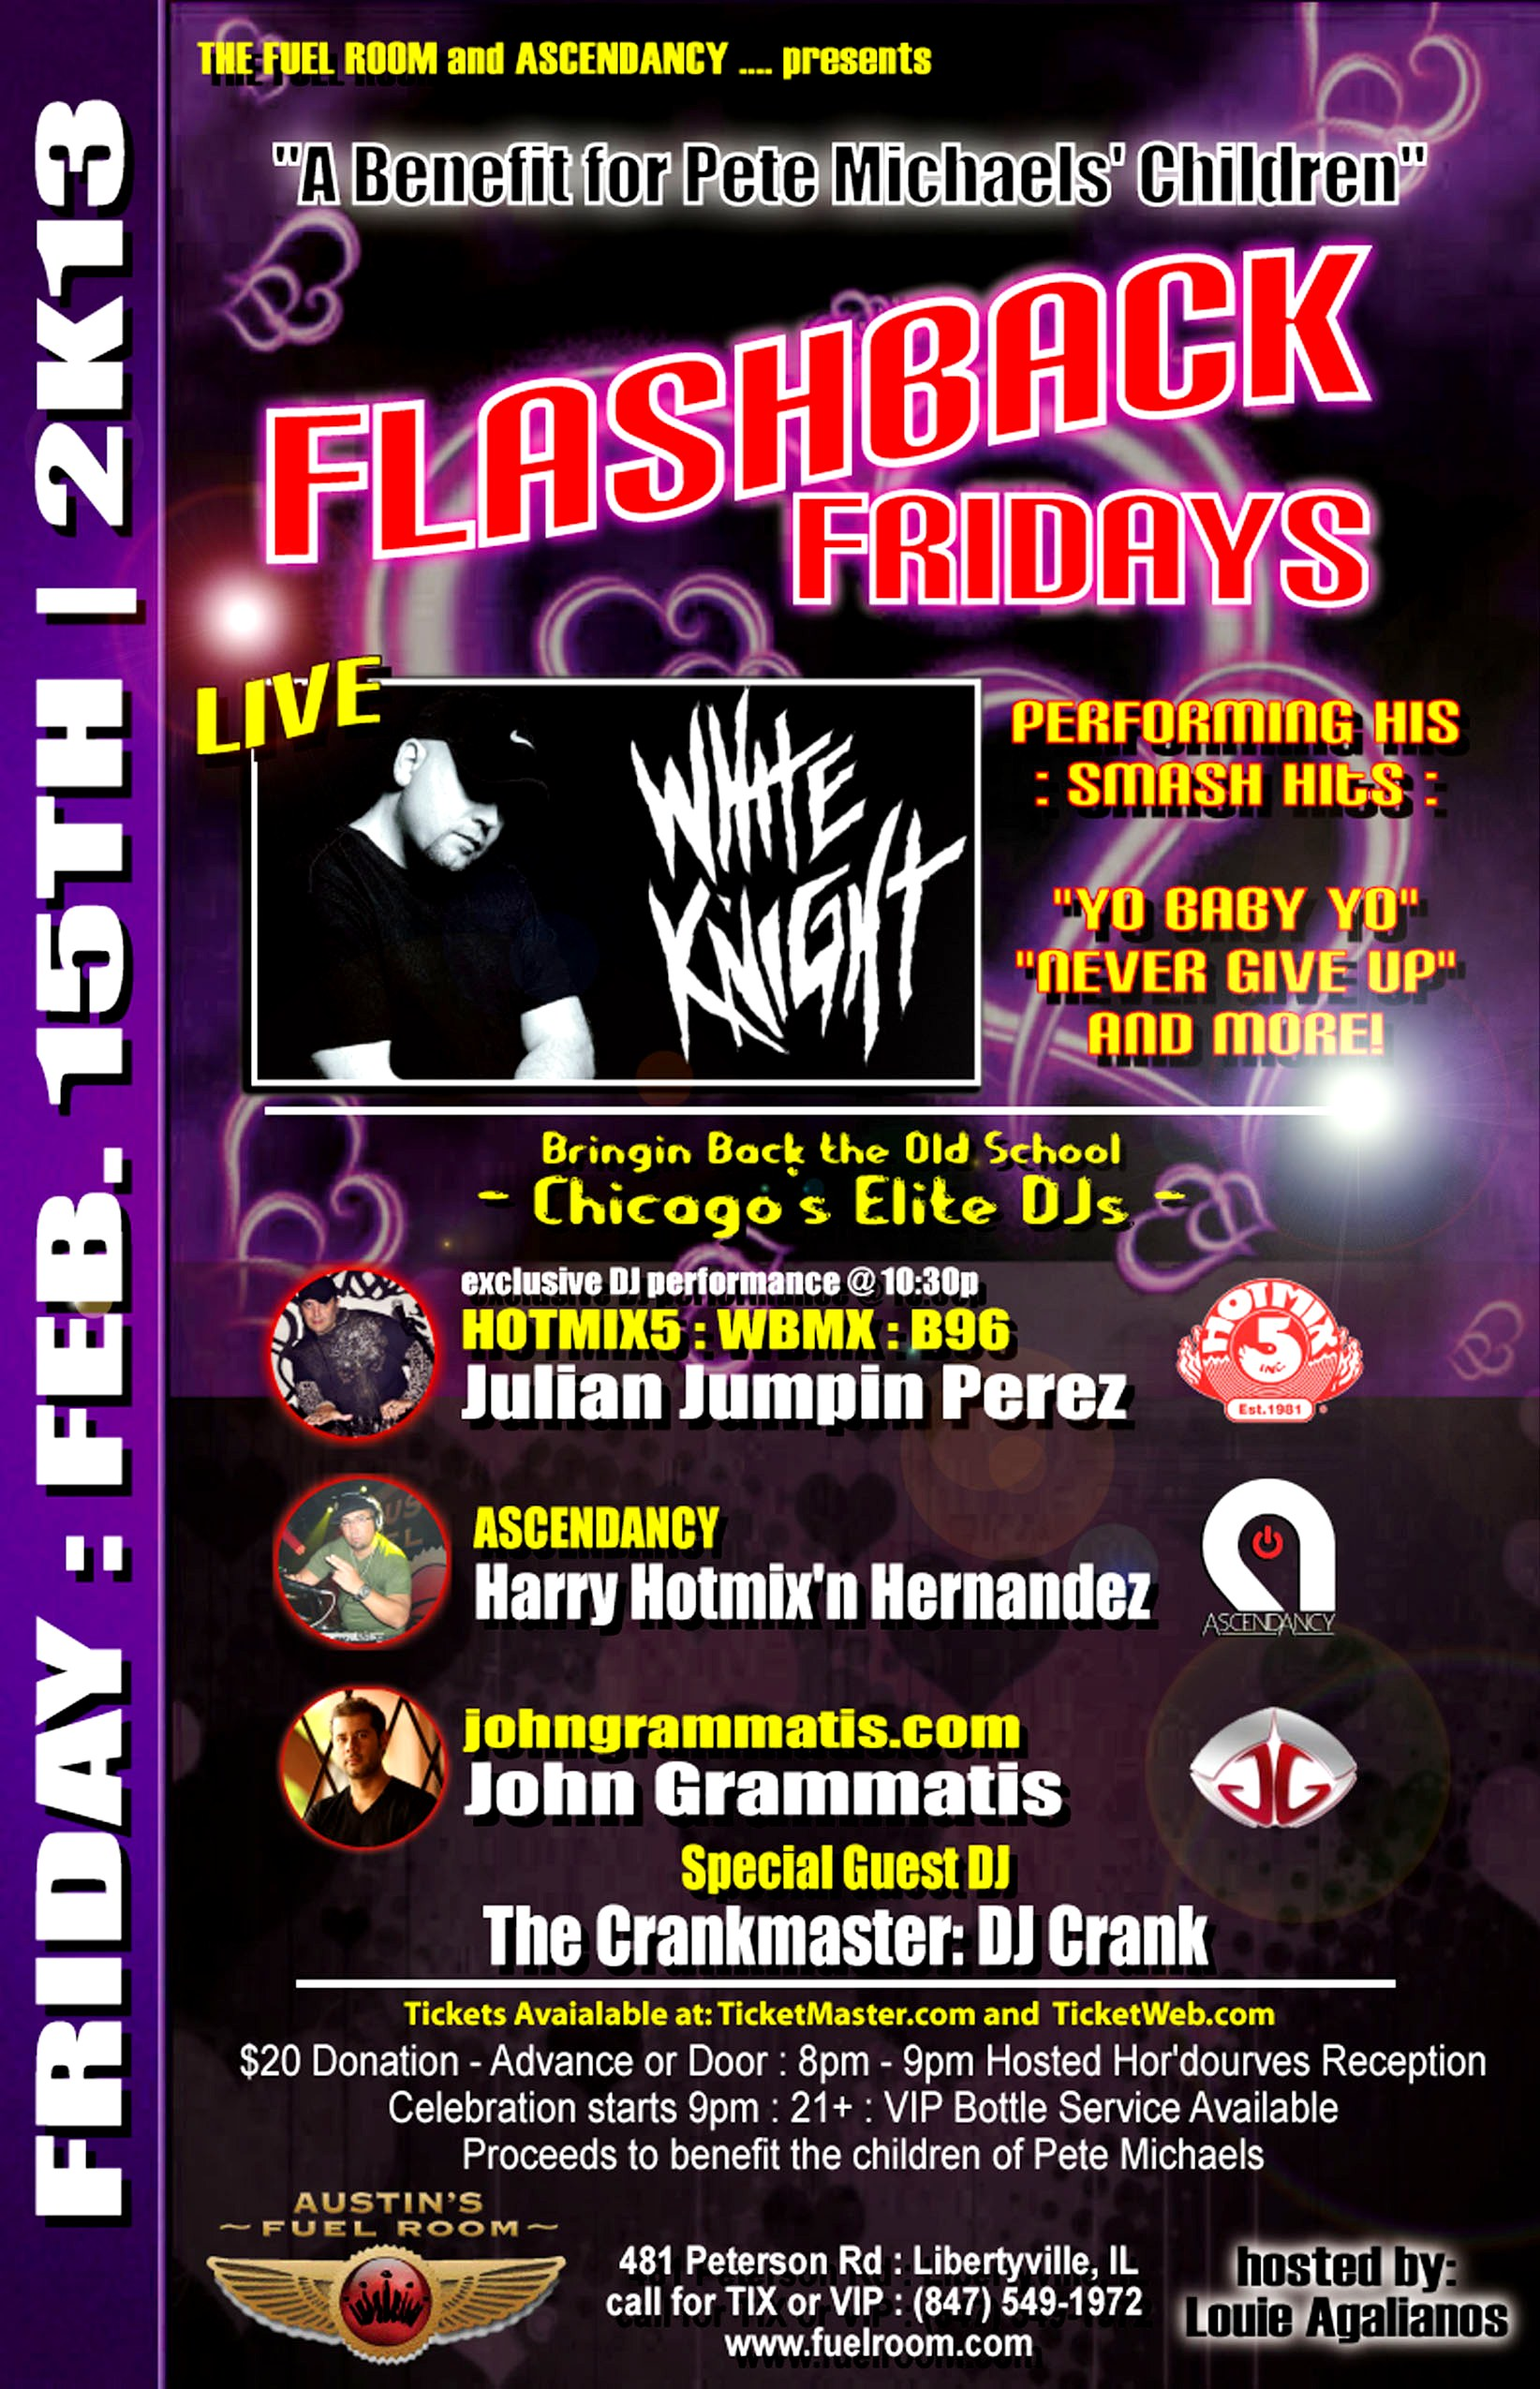 Benefit for Pete Michaels Children Flashback Fridays